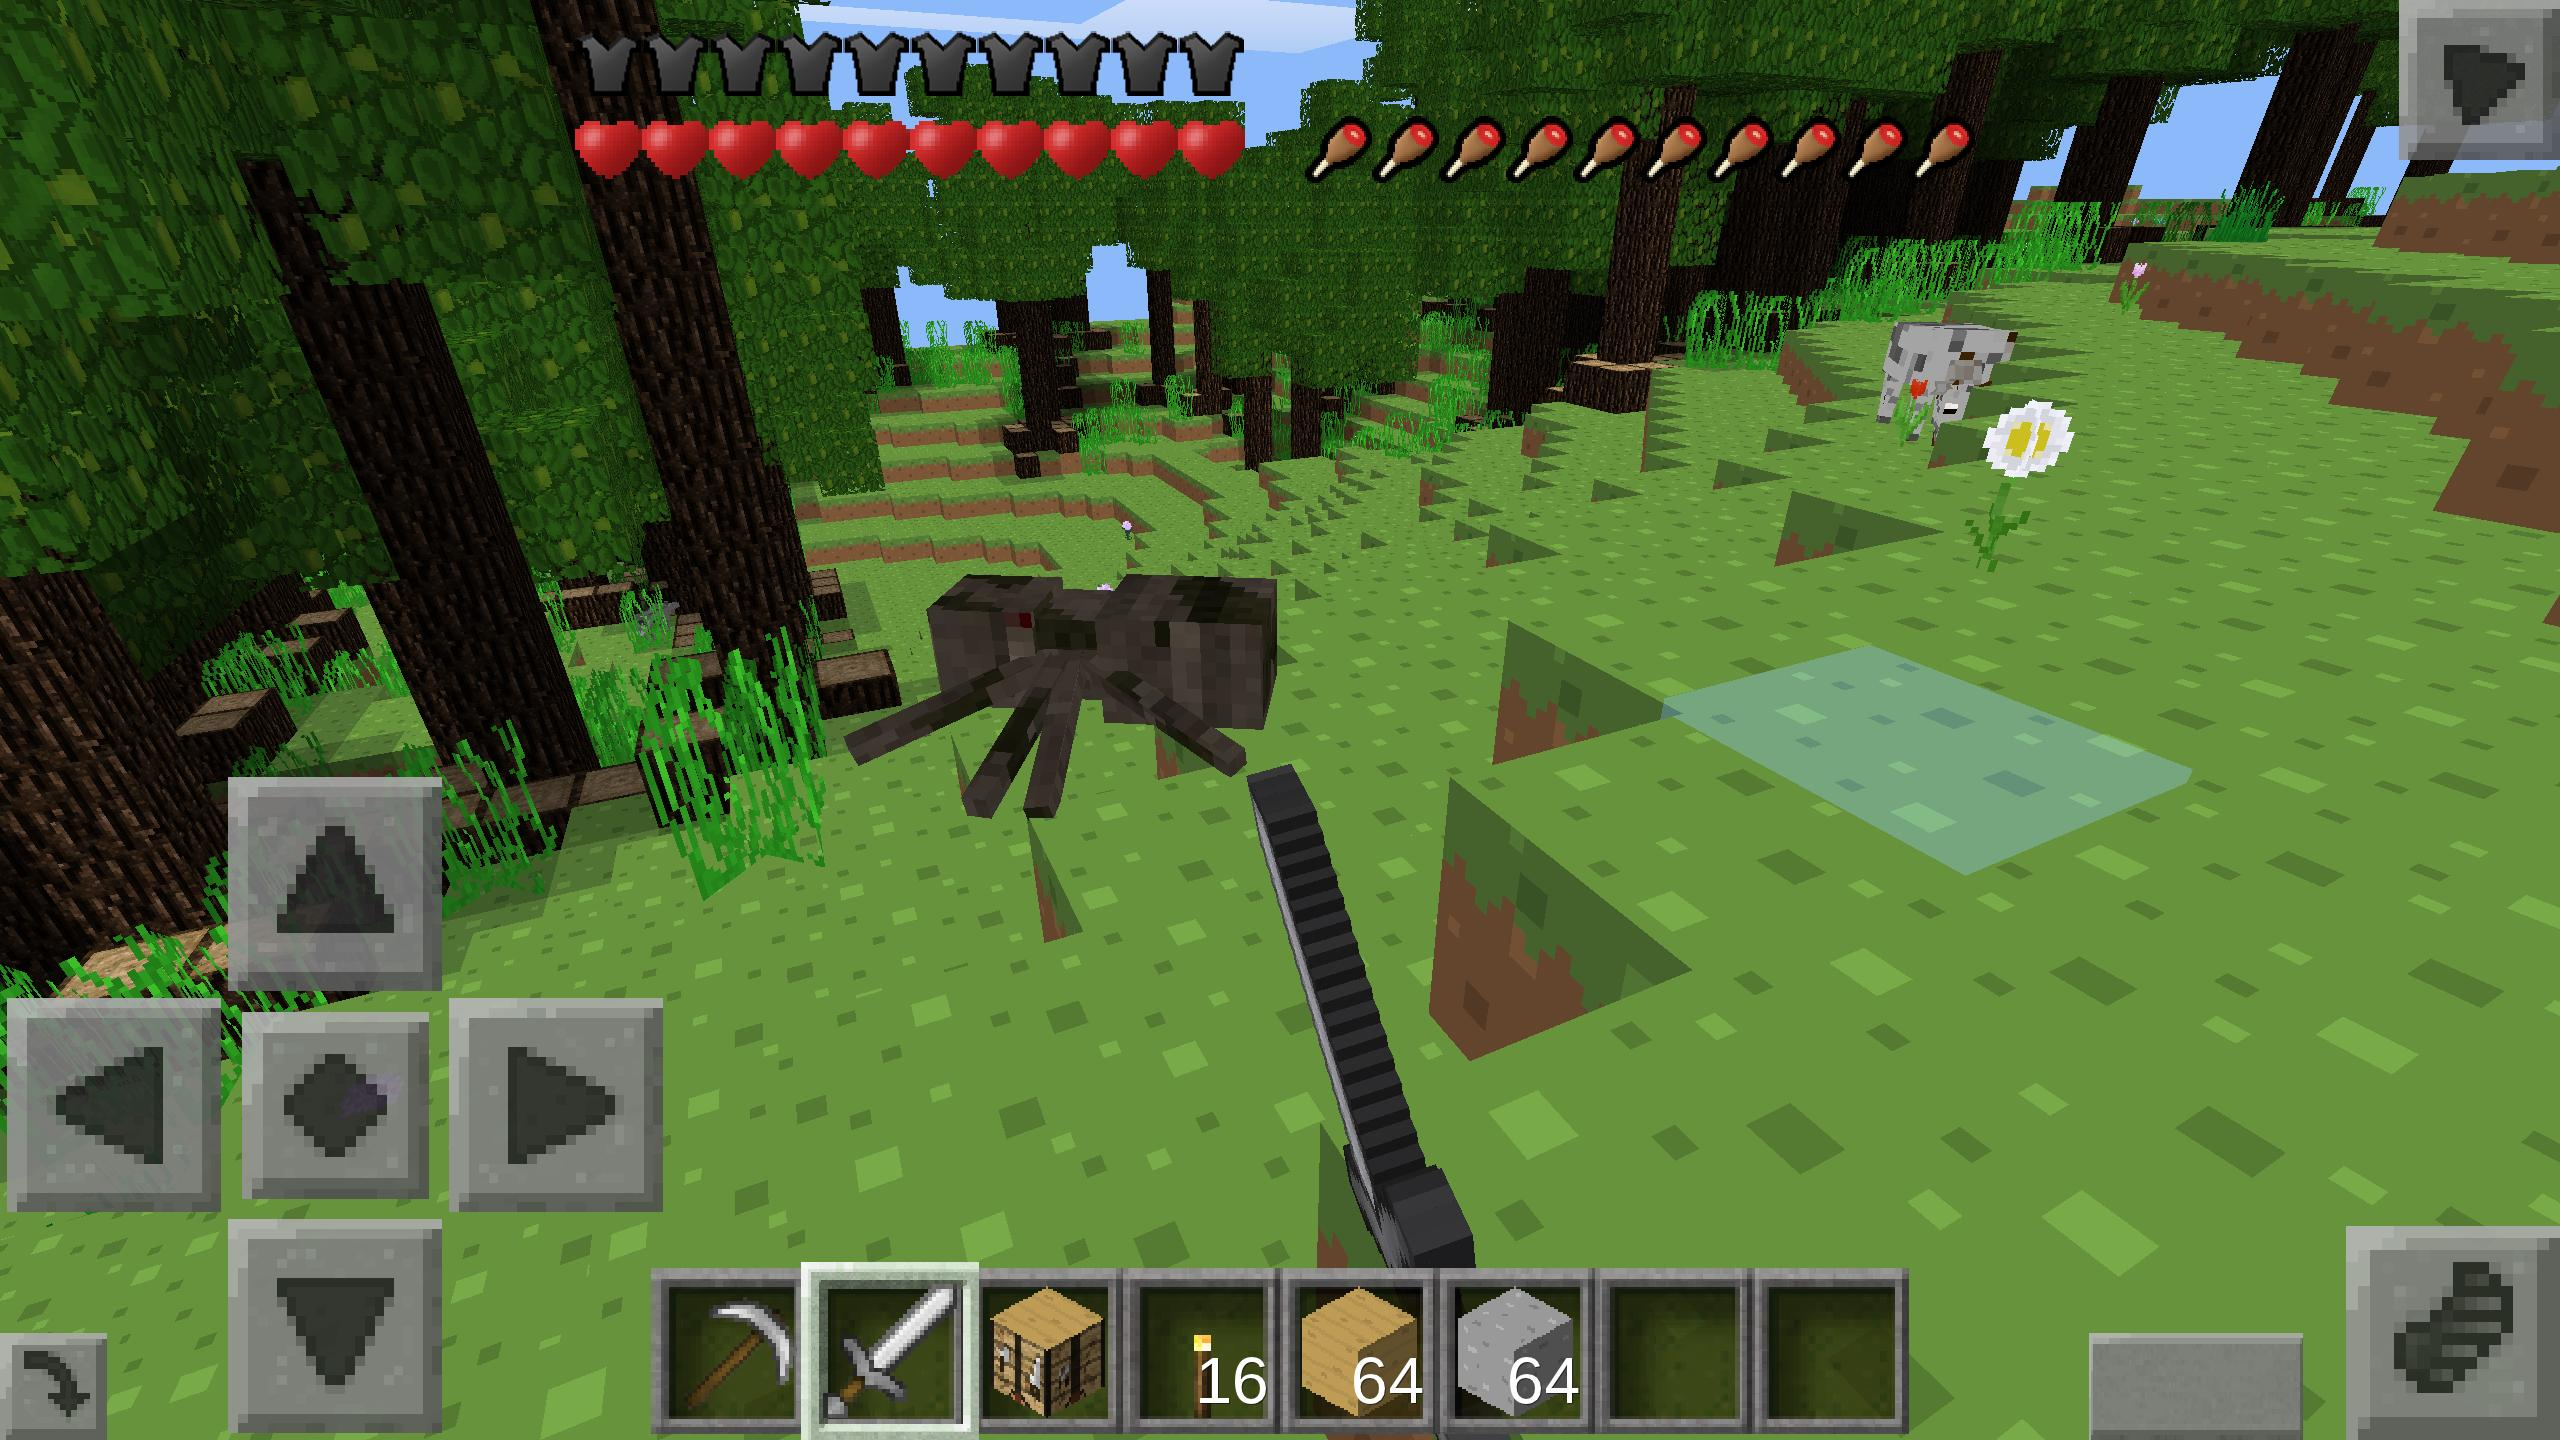 Play survival craft for Android - APK Download